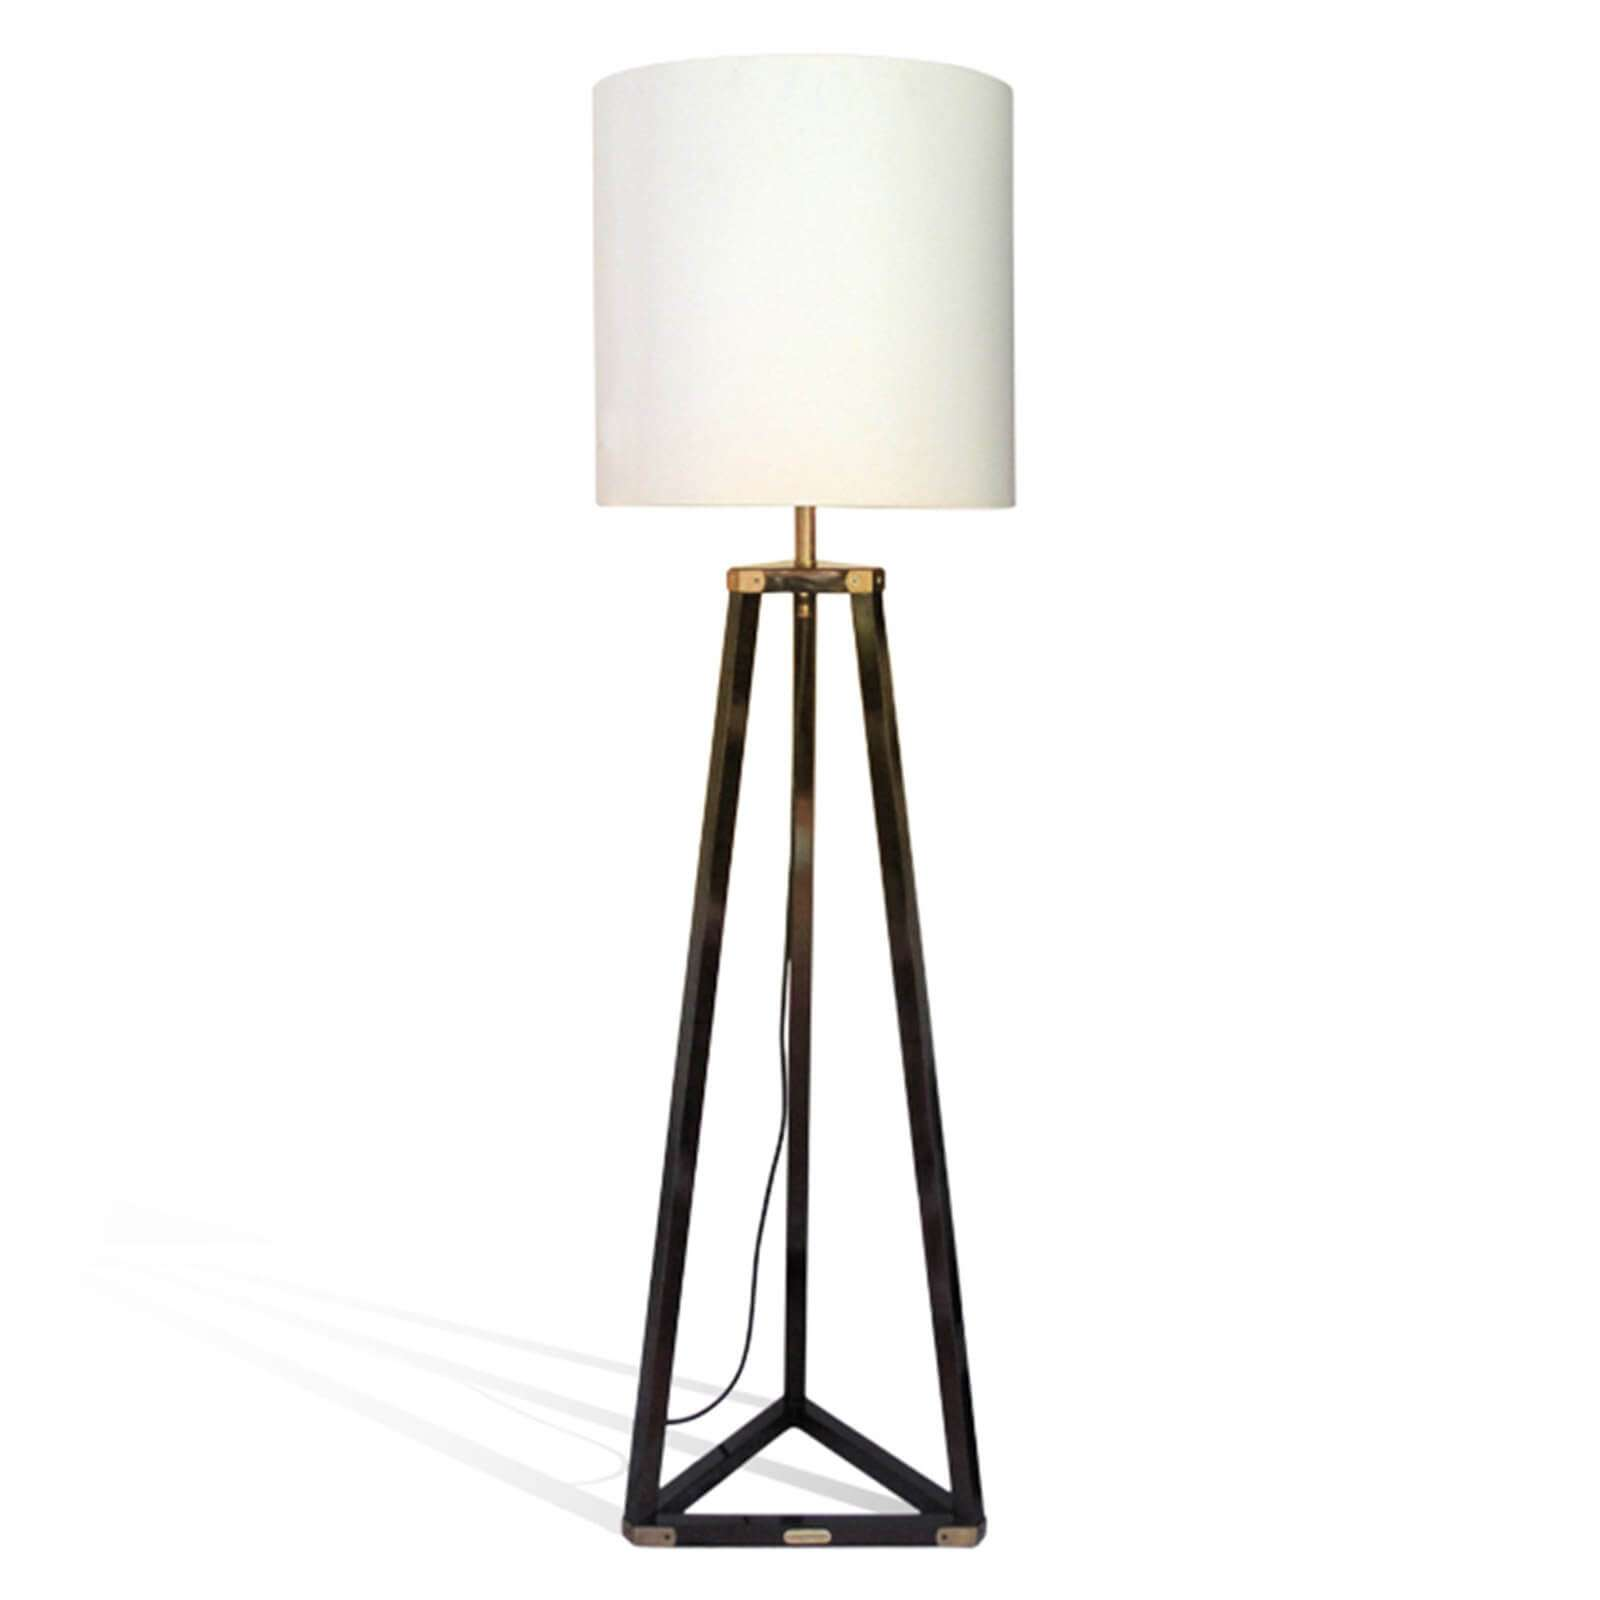 PENTHOUSE FLOOR LAMP / DARK BROWN